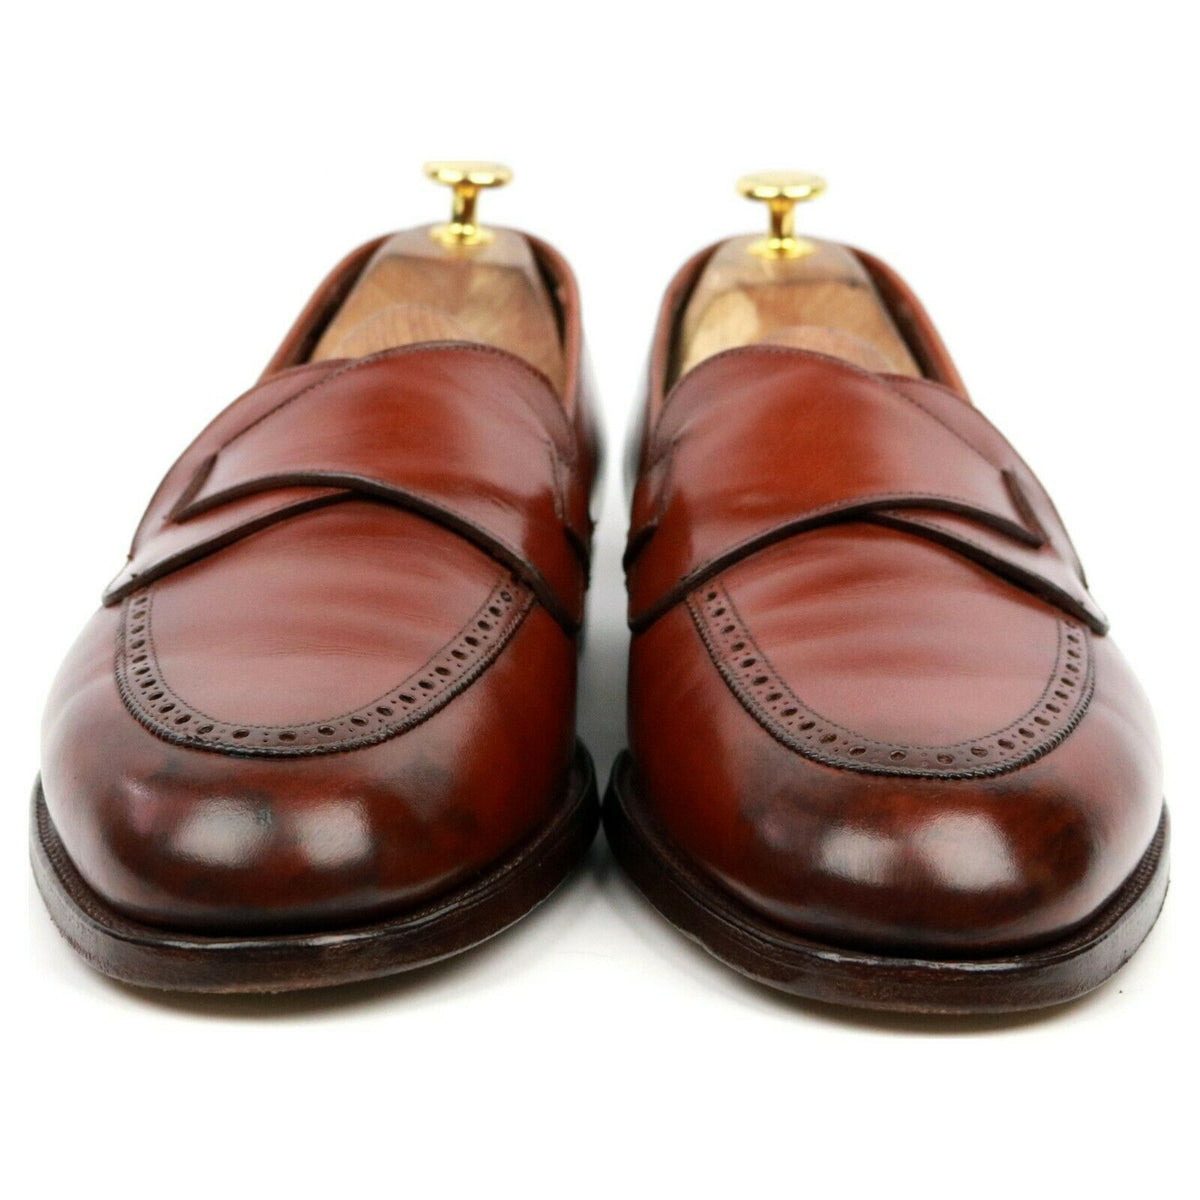 Crockett & Jones X Poulsen Skone Brown Leather Butterfly Loafers UK 11.5 E